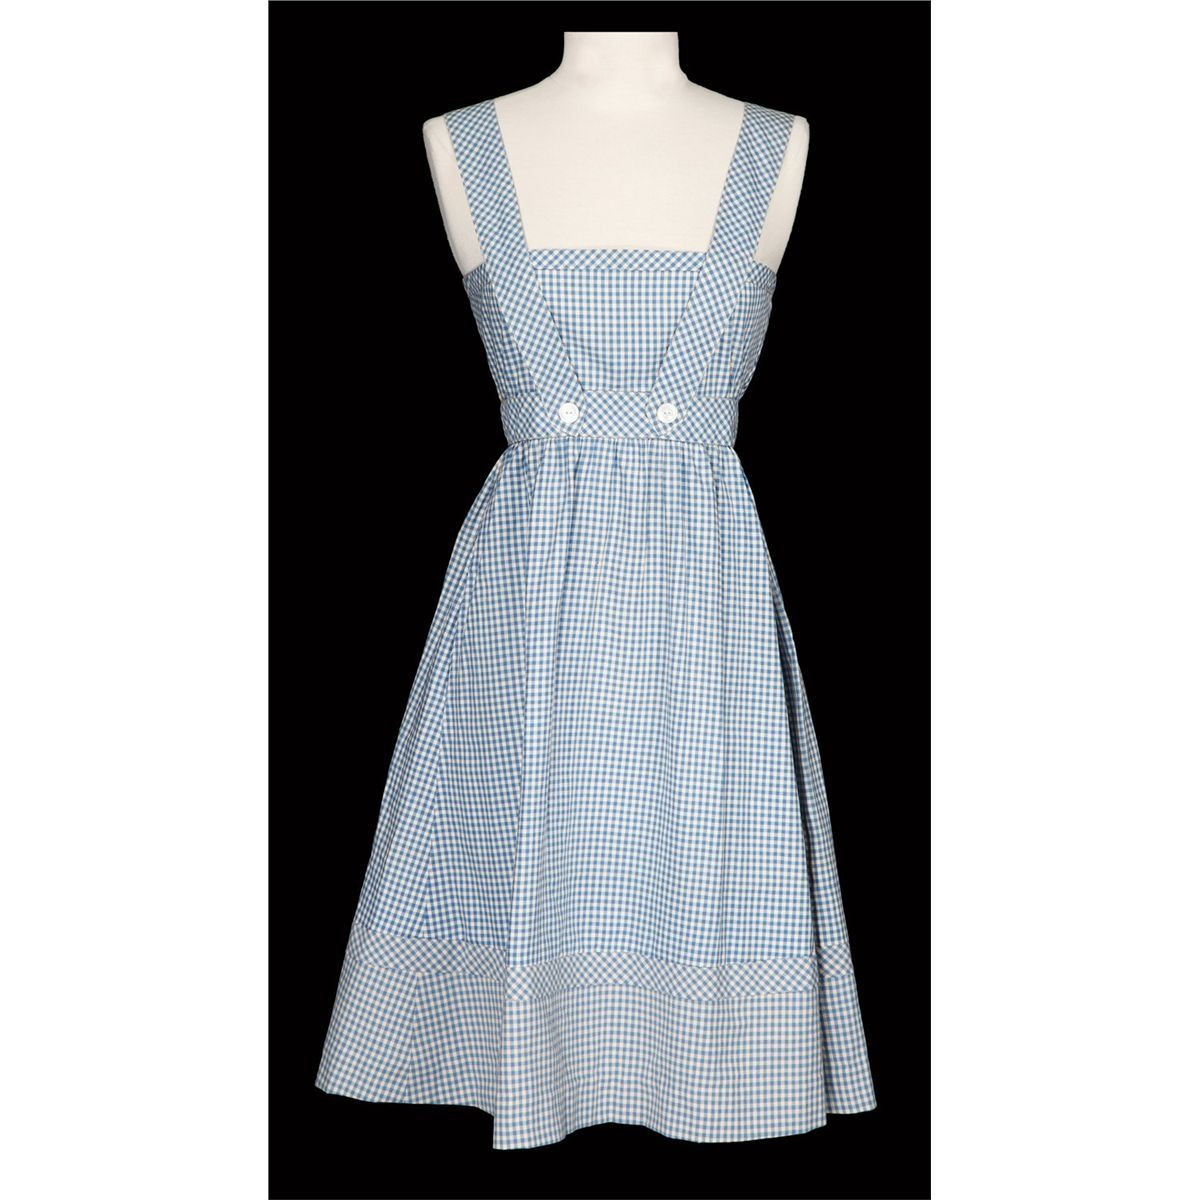 White apron pinafore - Judy Garland Screen Used Dorothy Gale Blue And White Gingham Pinafore Dress From